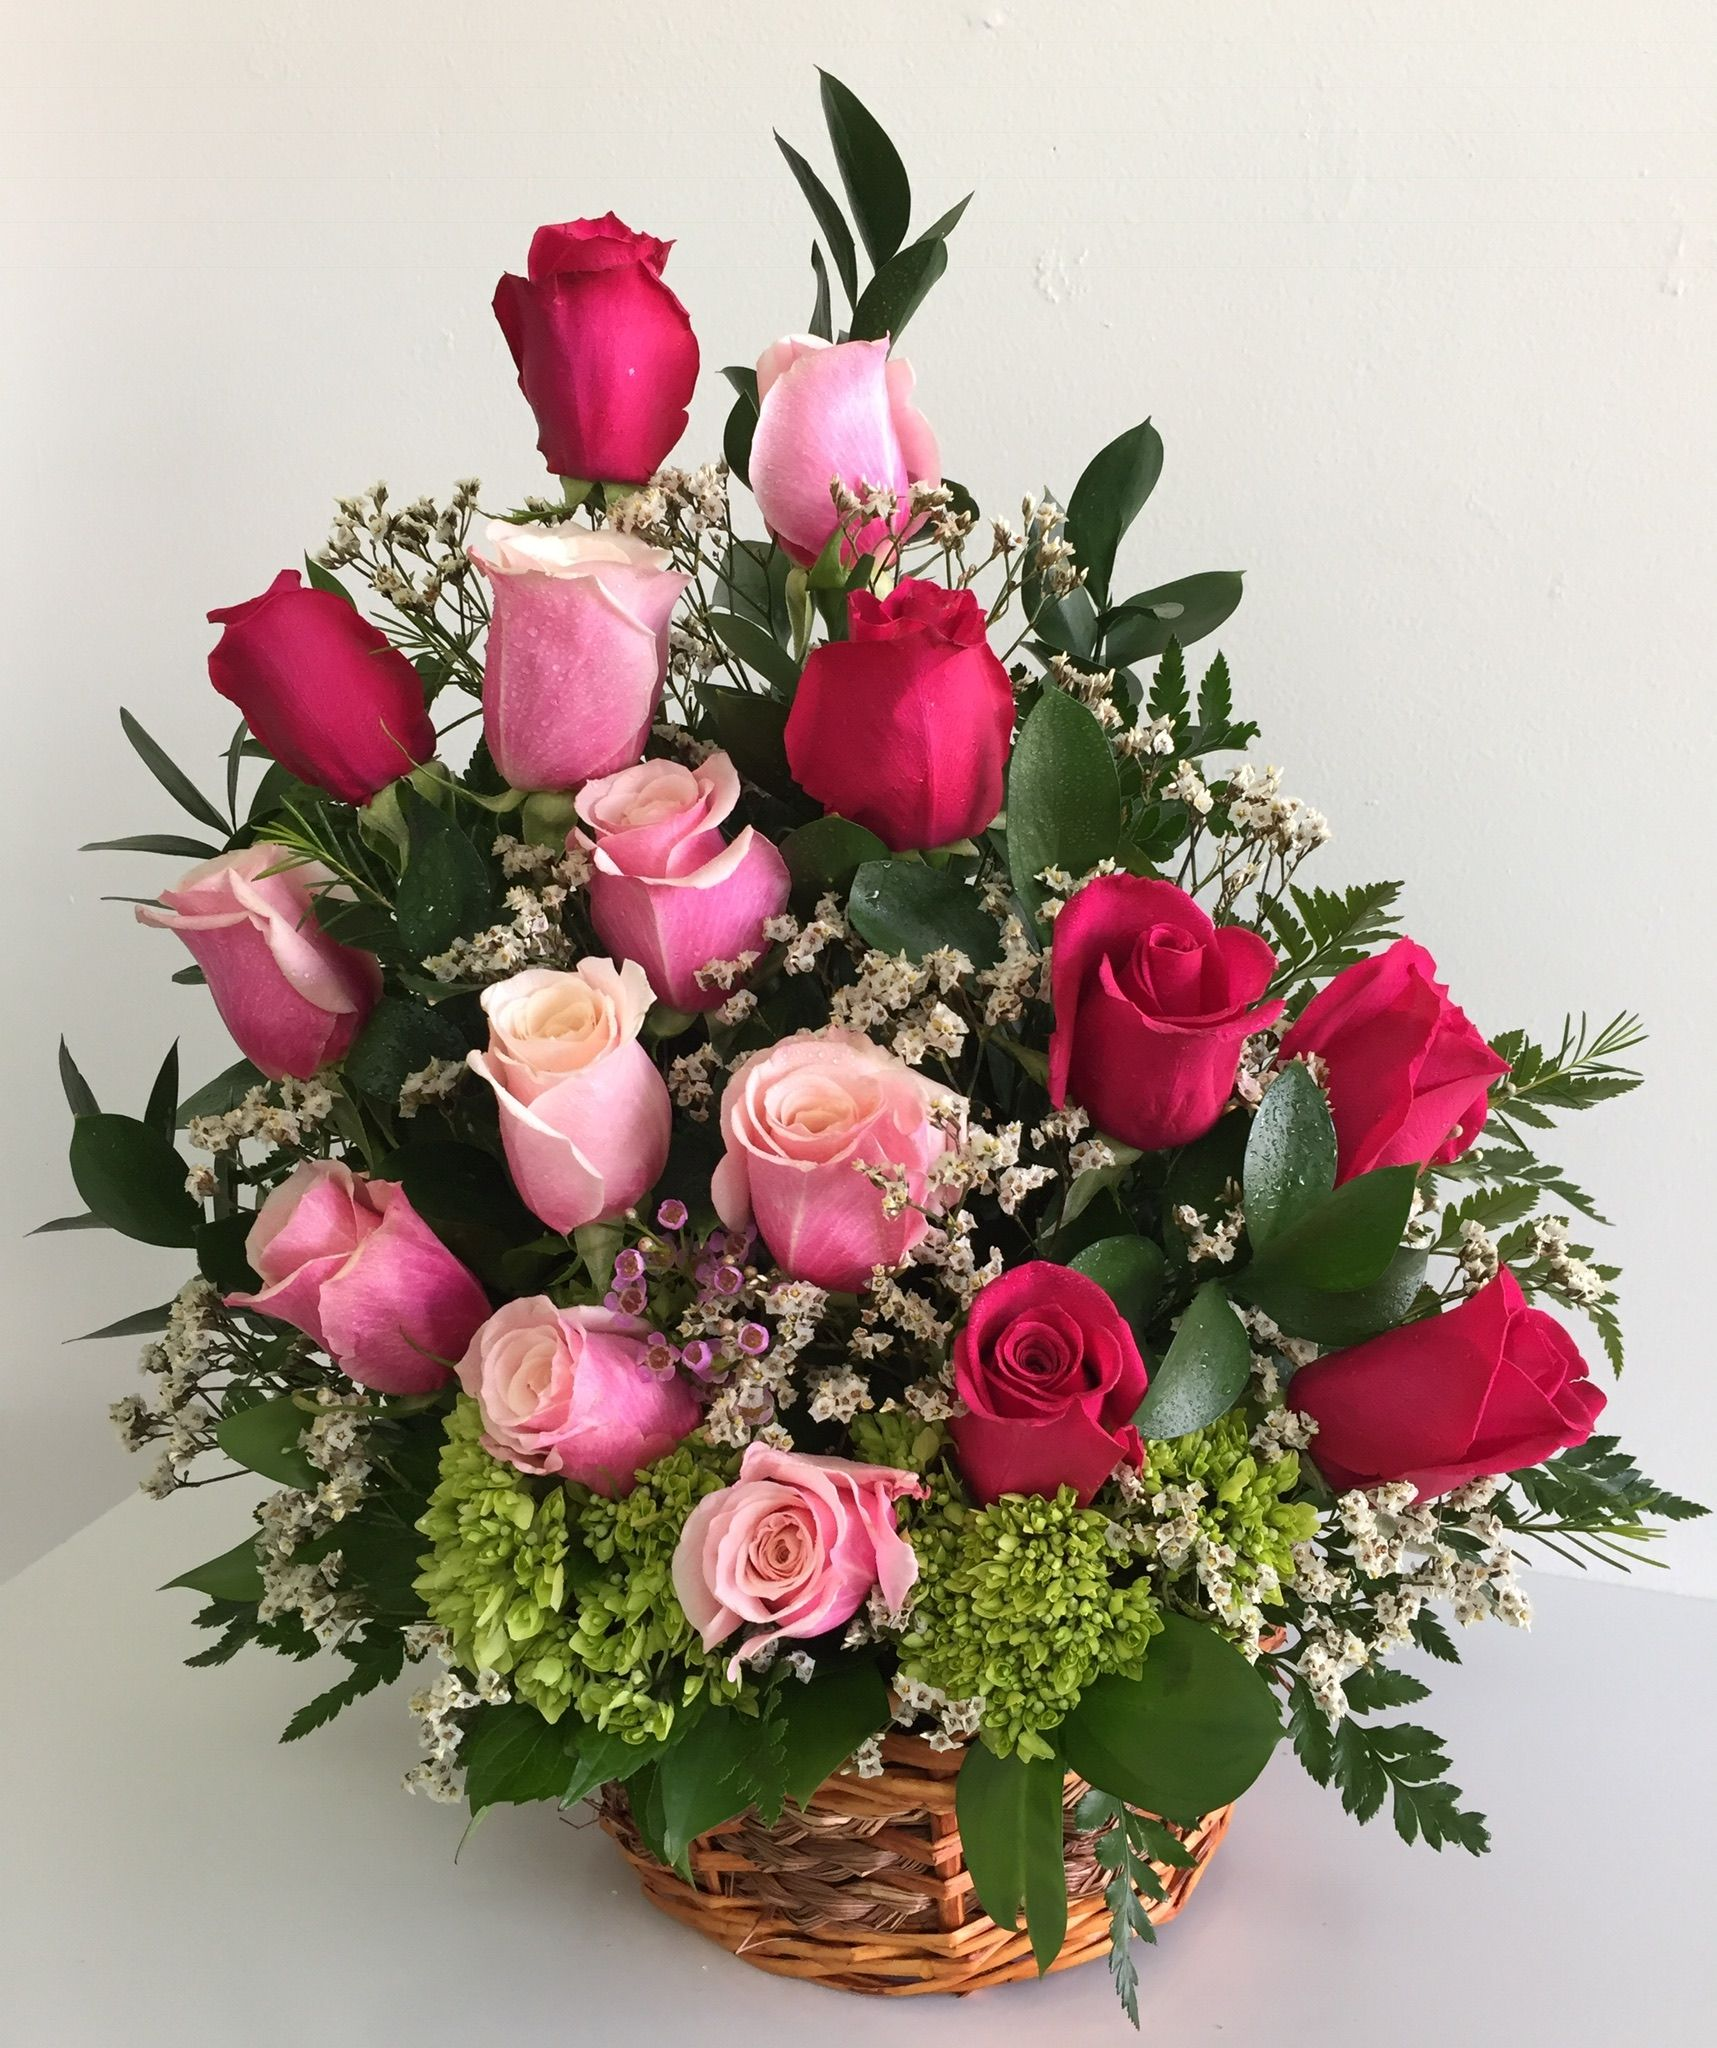 Pin By Raul Barreto On Valentine S Day Flowers Rose Flower Arrangements Flower Arrangements Beautiful Flower Arrangements